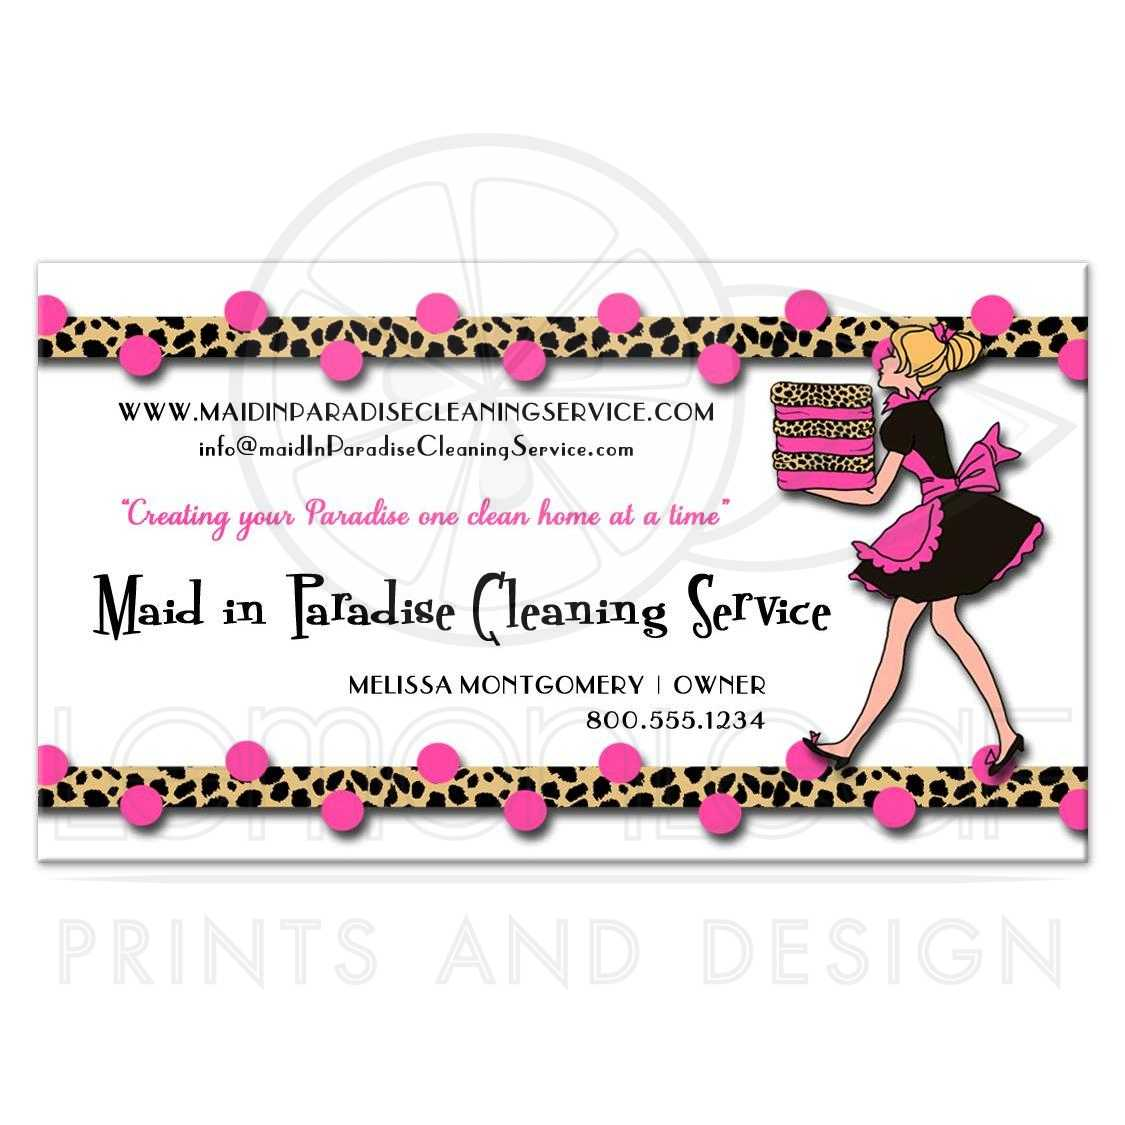 Polka Dots and Leopard Print Cleaning Service Business Card